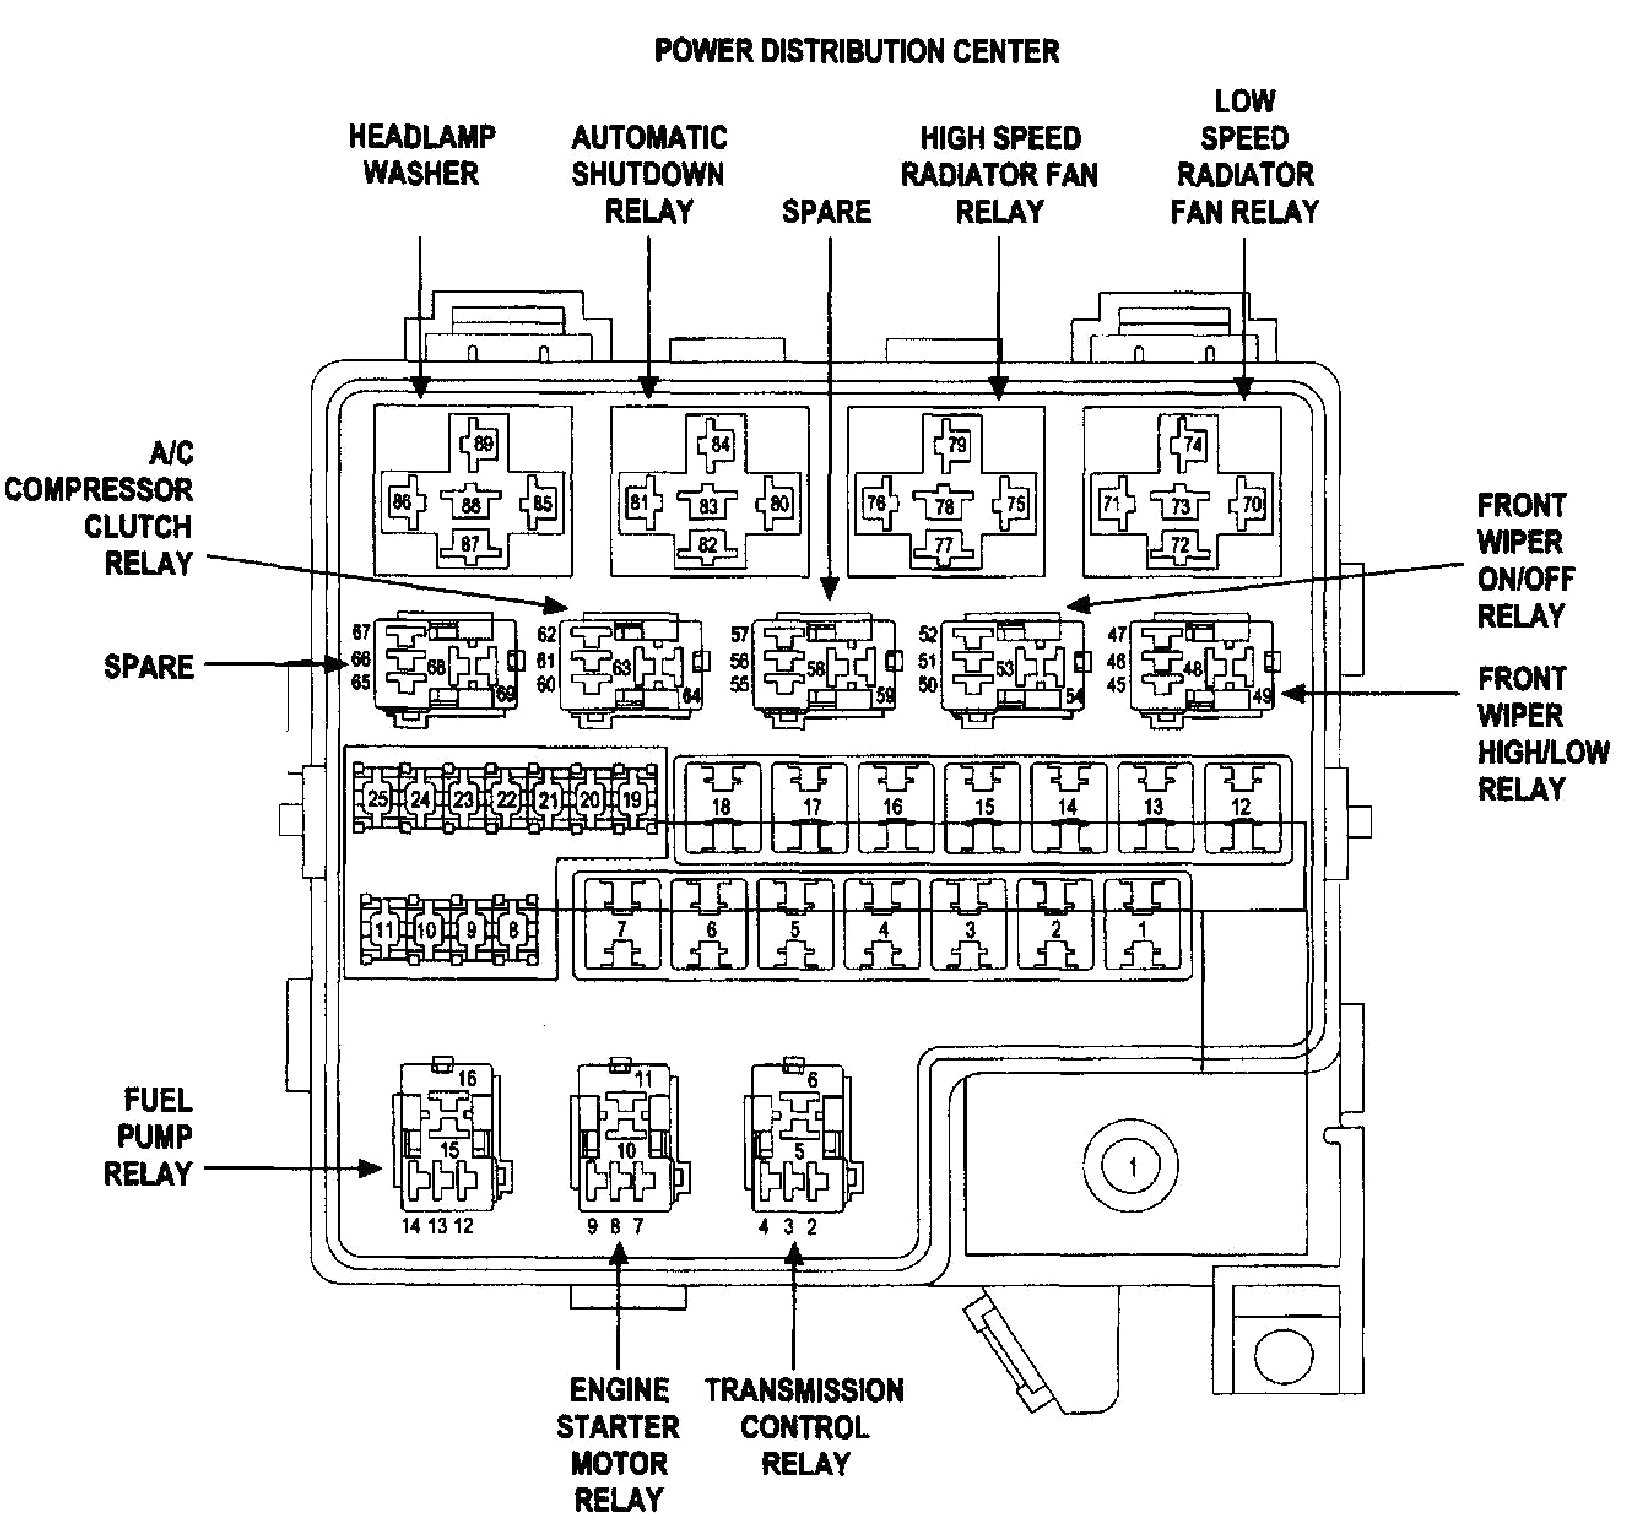 Dodge Stratus Fuse Box Diagram - image details